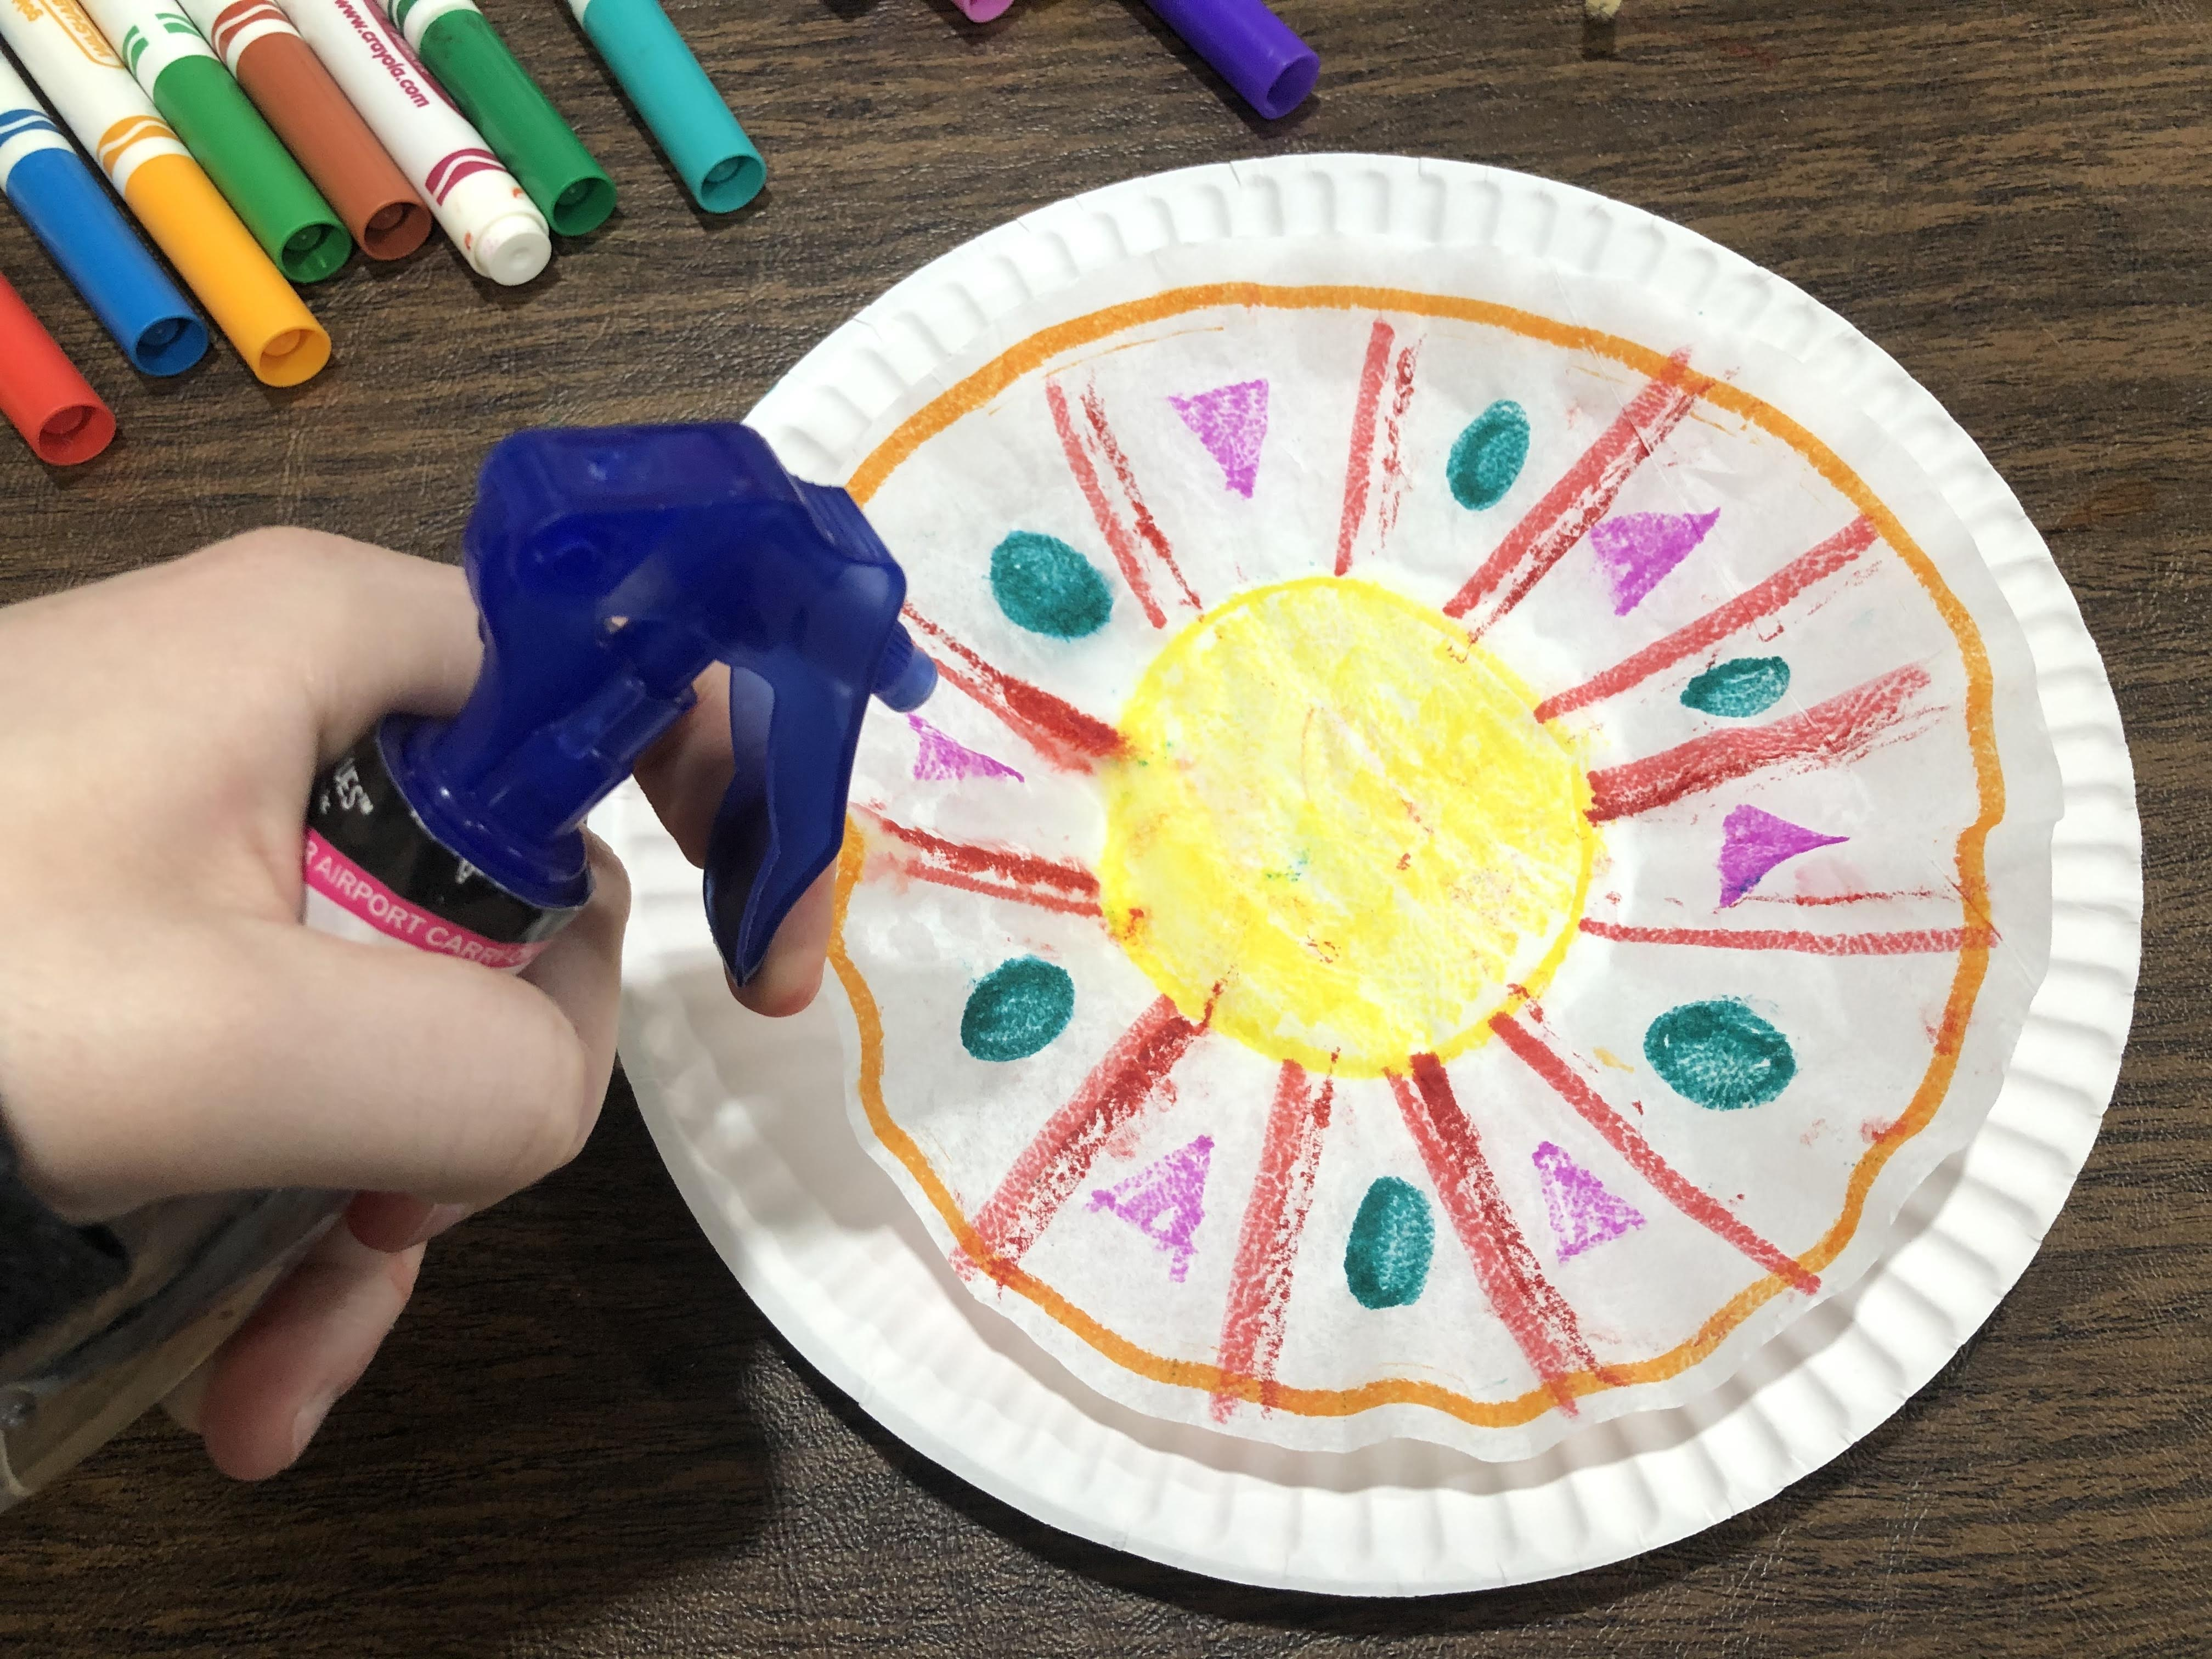 Simple Craft Ideas Using Household Items (Part I)